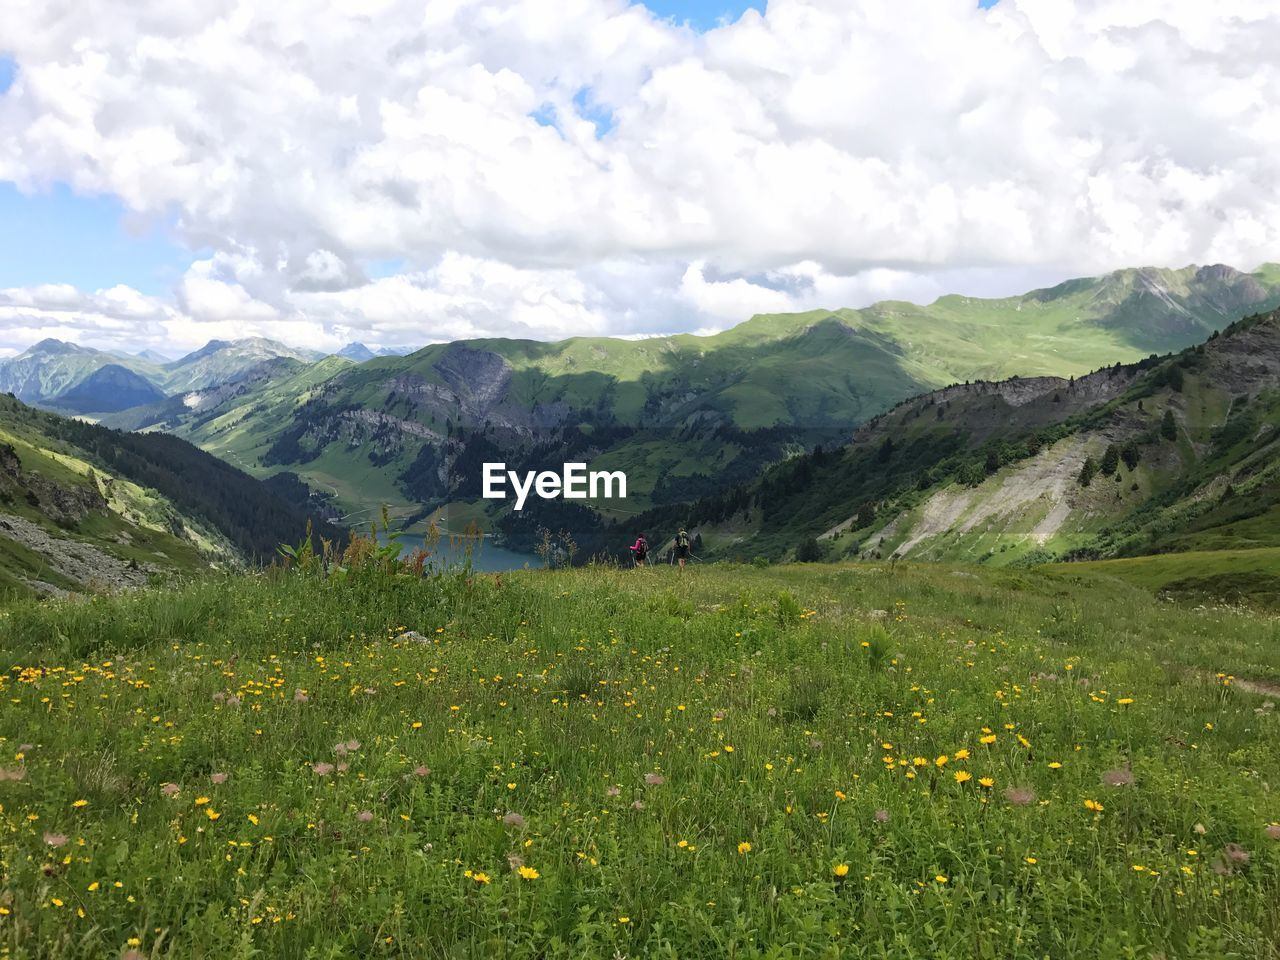 mountain, nature, beauty in nature, sky, landscape, scenery, day, wilderness, meadow, vegetation, travel, outdoors, peak, scenics, hiking, no people, flower, grass, freshness, range